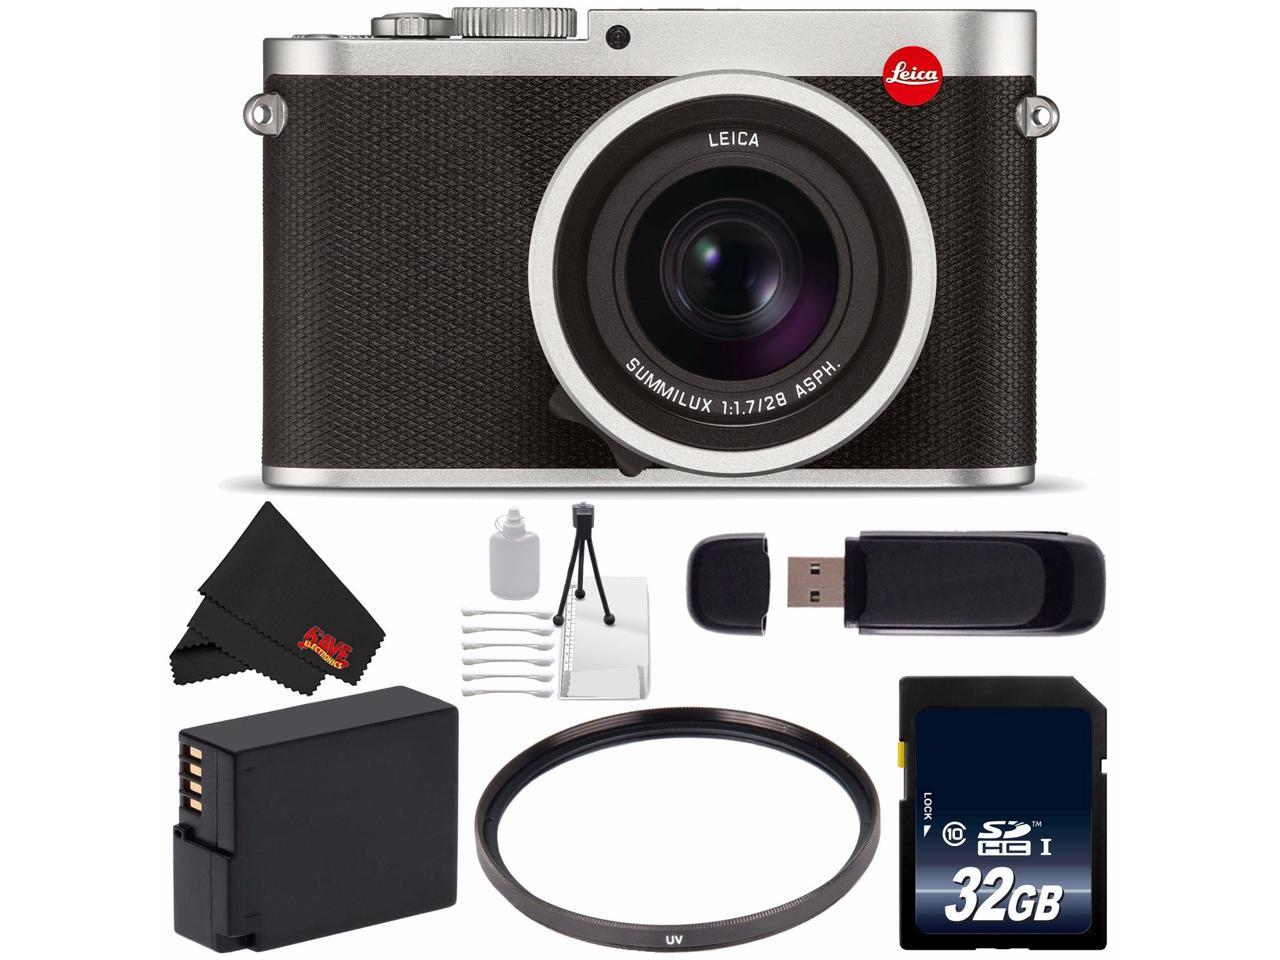 Leica Q Typ 116 Digital Camera Silver Anodized 19022 32gb Sdhc Class 10 Memory Card Dmw Blc12 Lithium Ion Battery 49mm Uv Filter Sd Card Usb Reader Deluxe Starter Kit Bundle Newegg Com